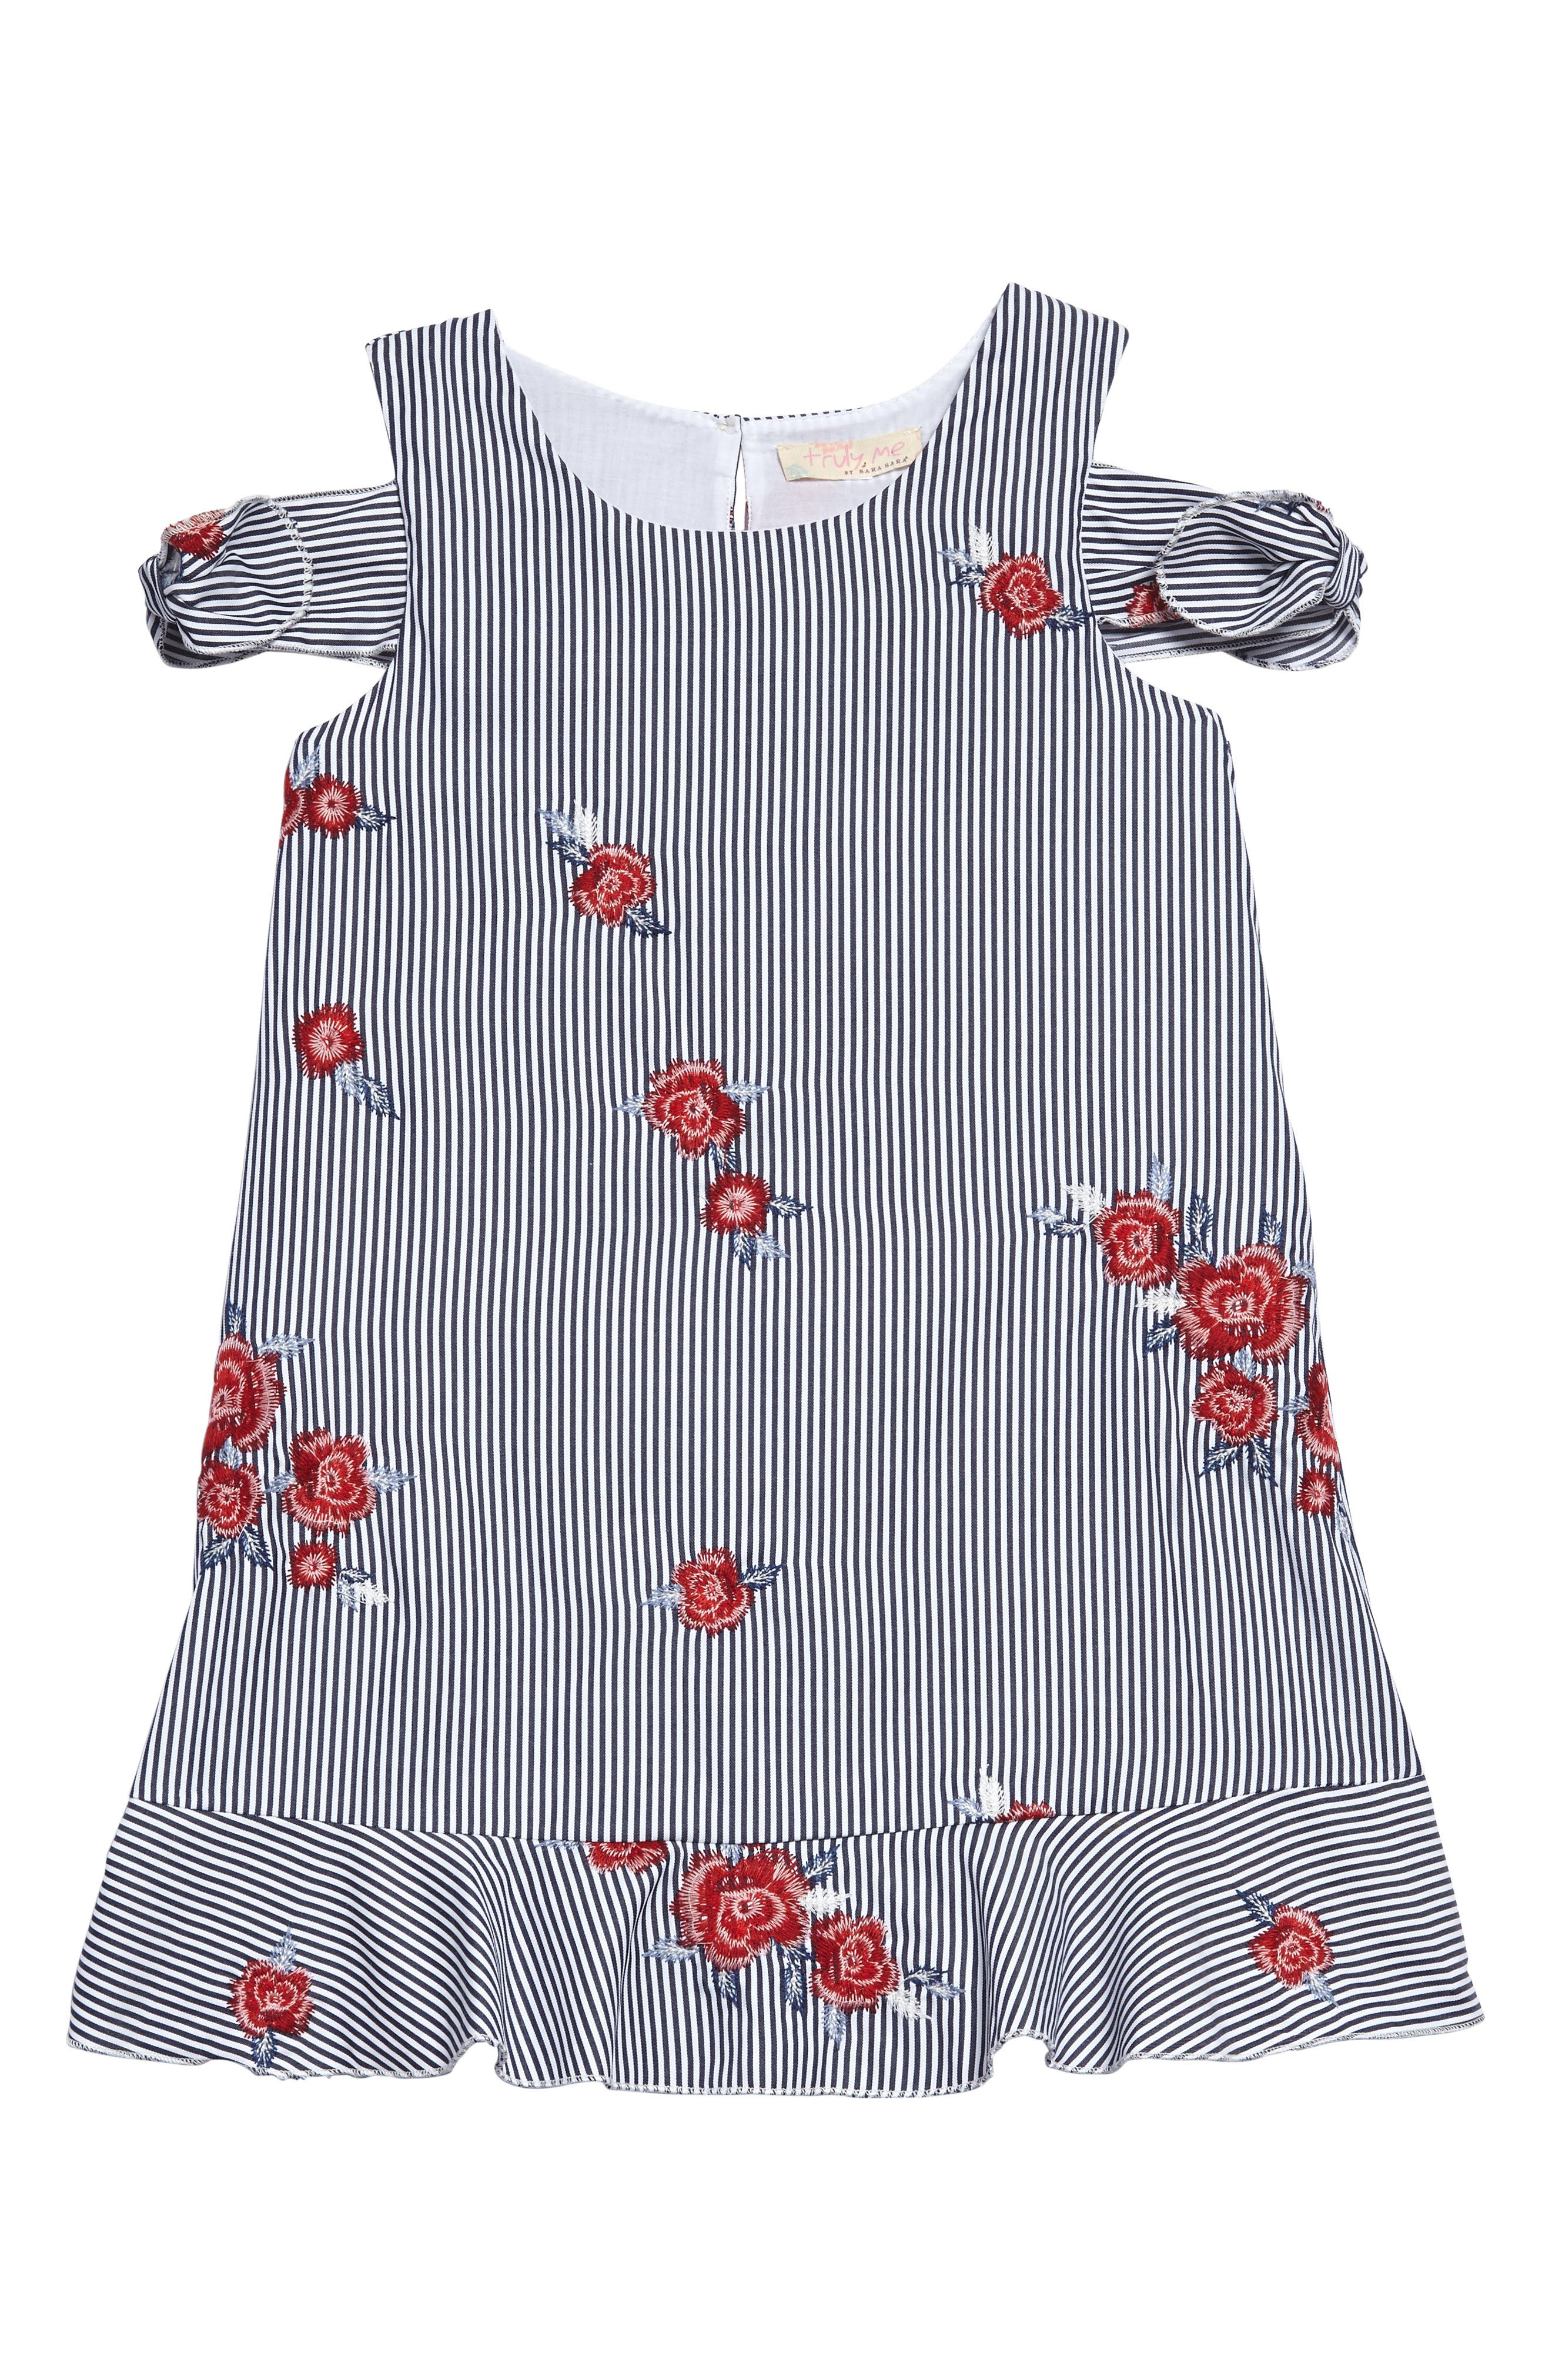 Embroidered Stripe Dress,                             Main thumbnail 1, color,                             Navy Multi